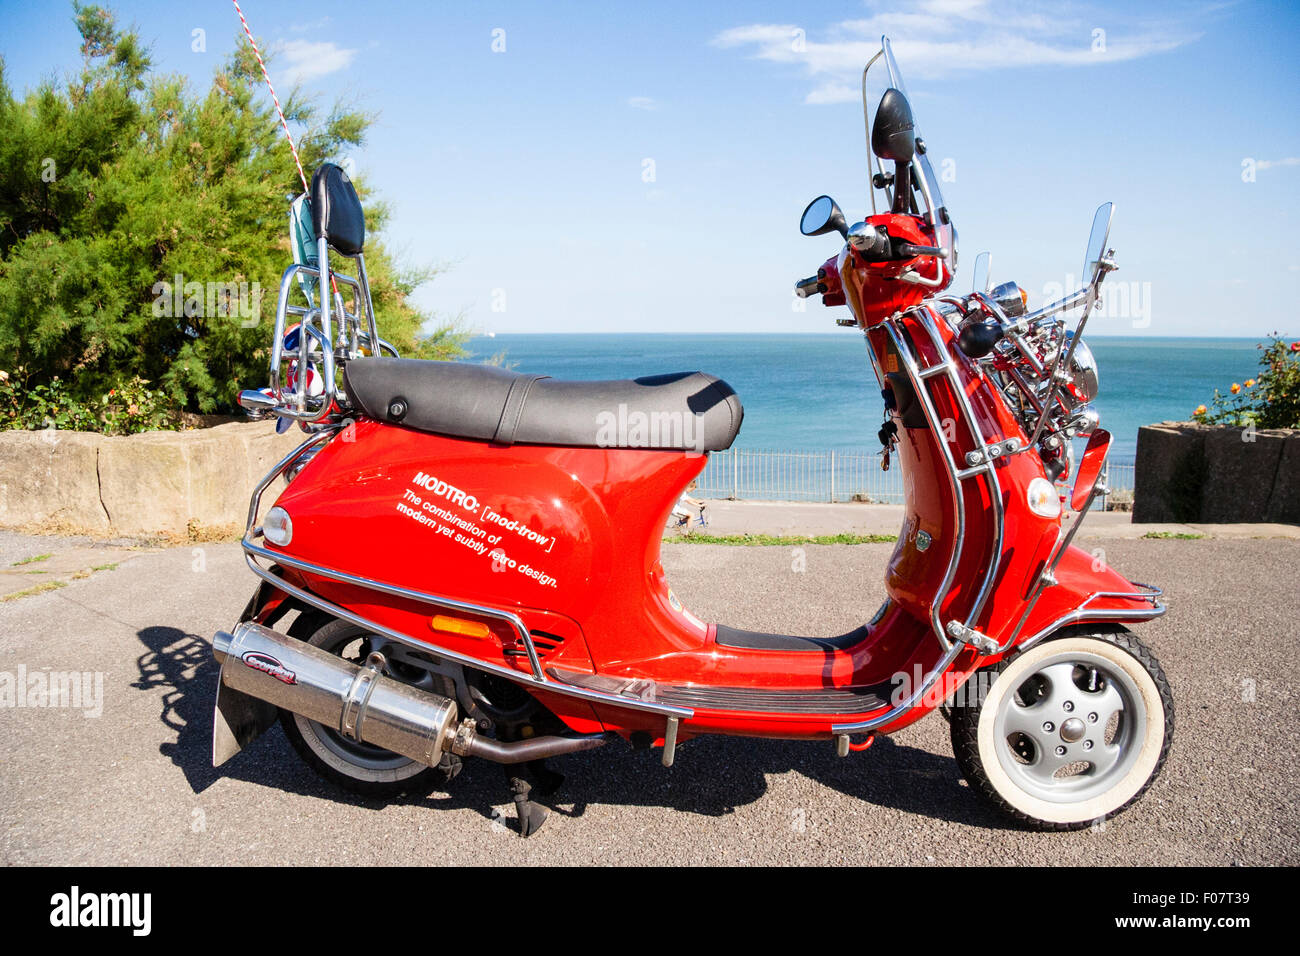 motor scooter vespa et4 125 modified many wing mirrors as per mods stock photo 86224413 alamy. Black Bedroom Furniture Sets. Home Design Ideas